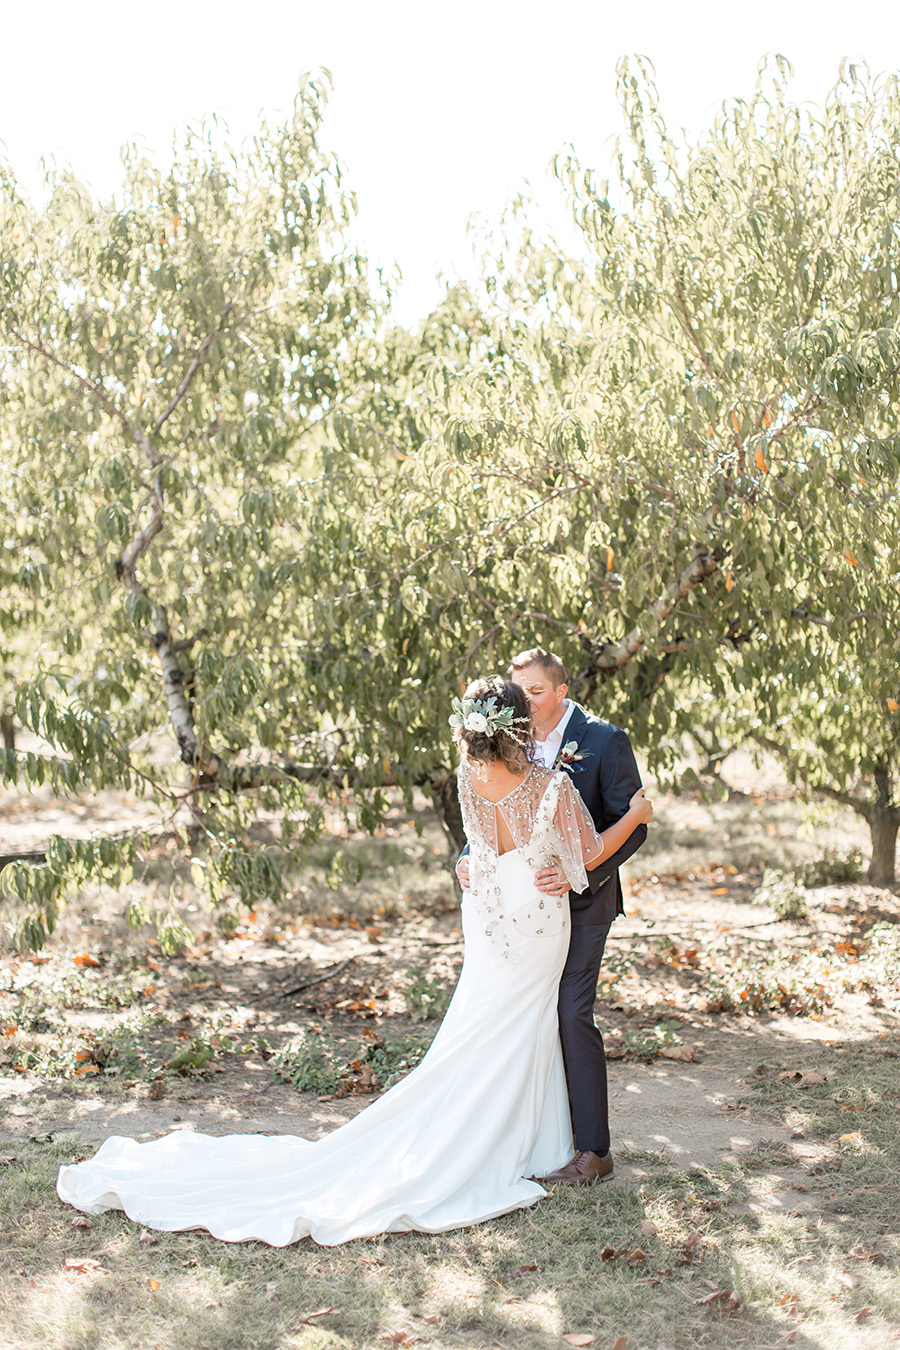 Romantic garden wedding near the apple orchards